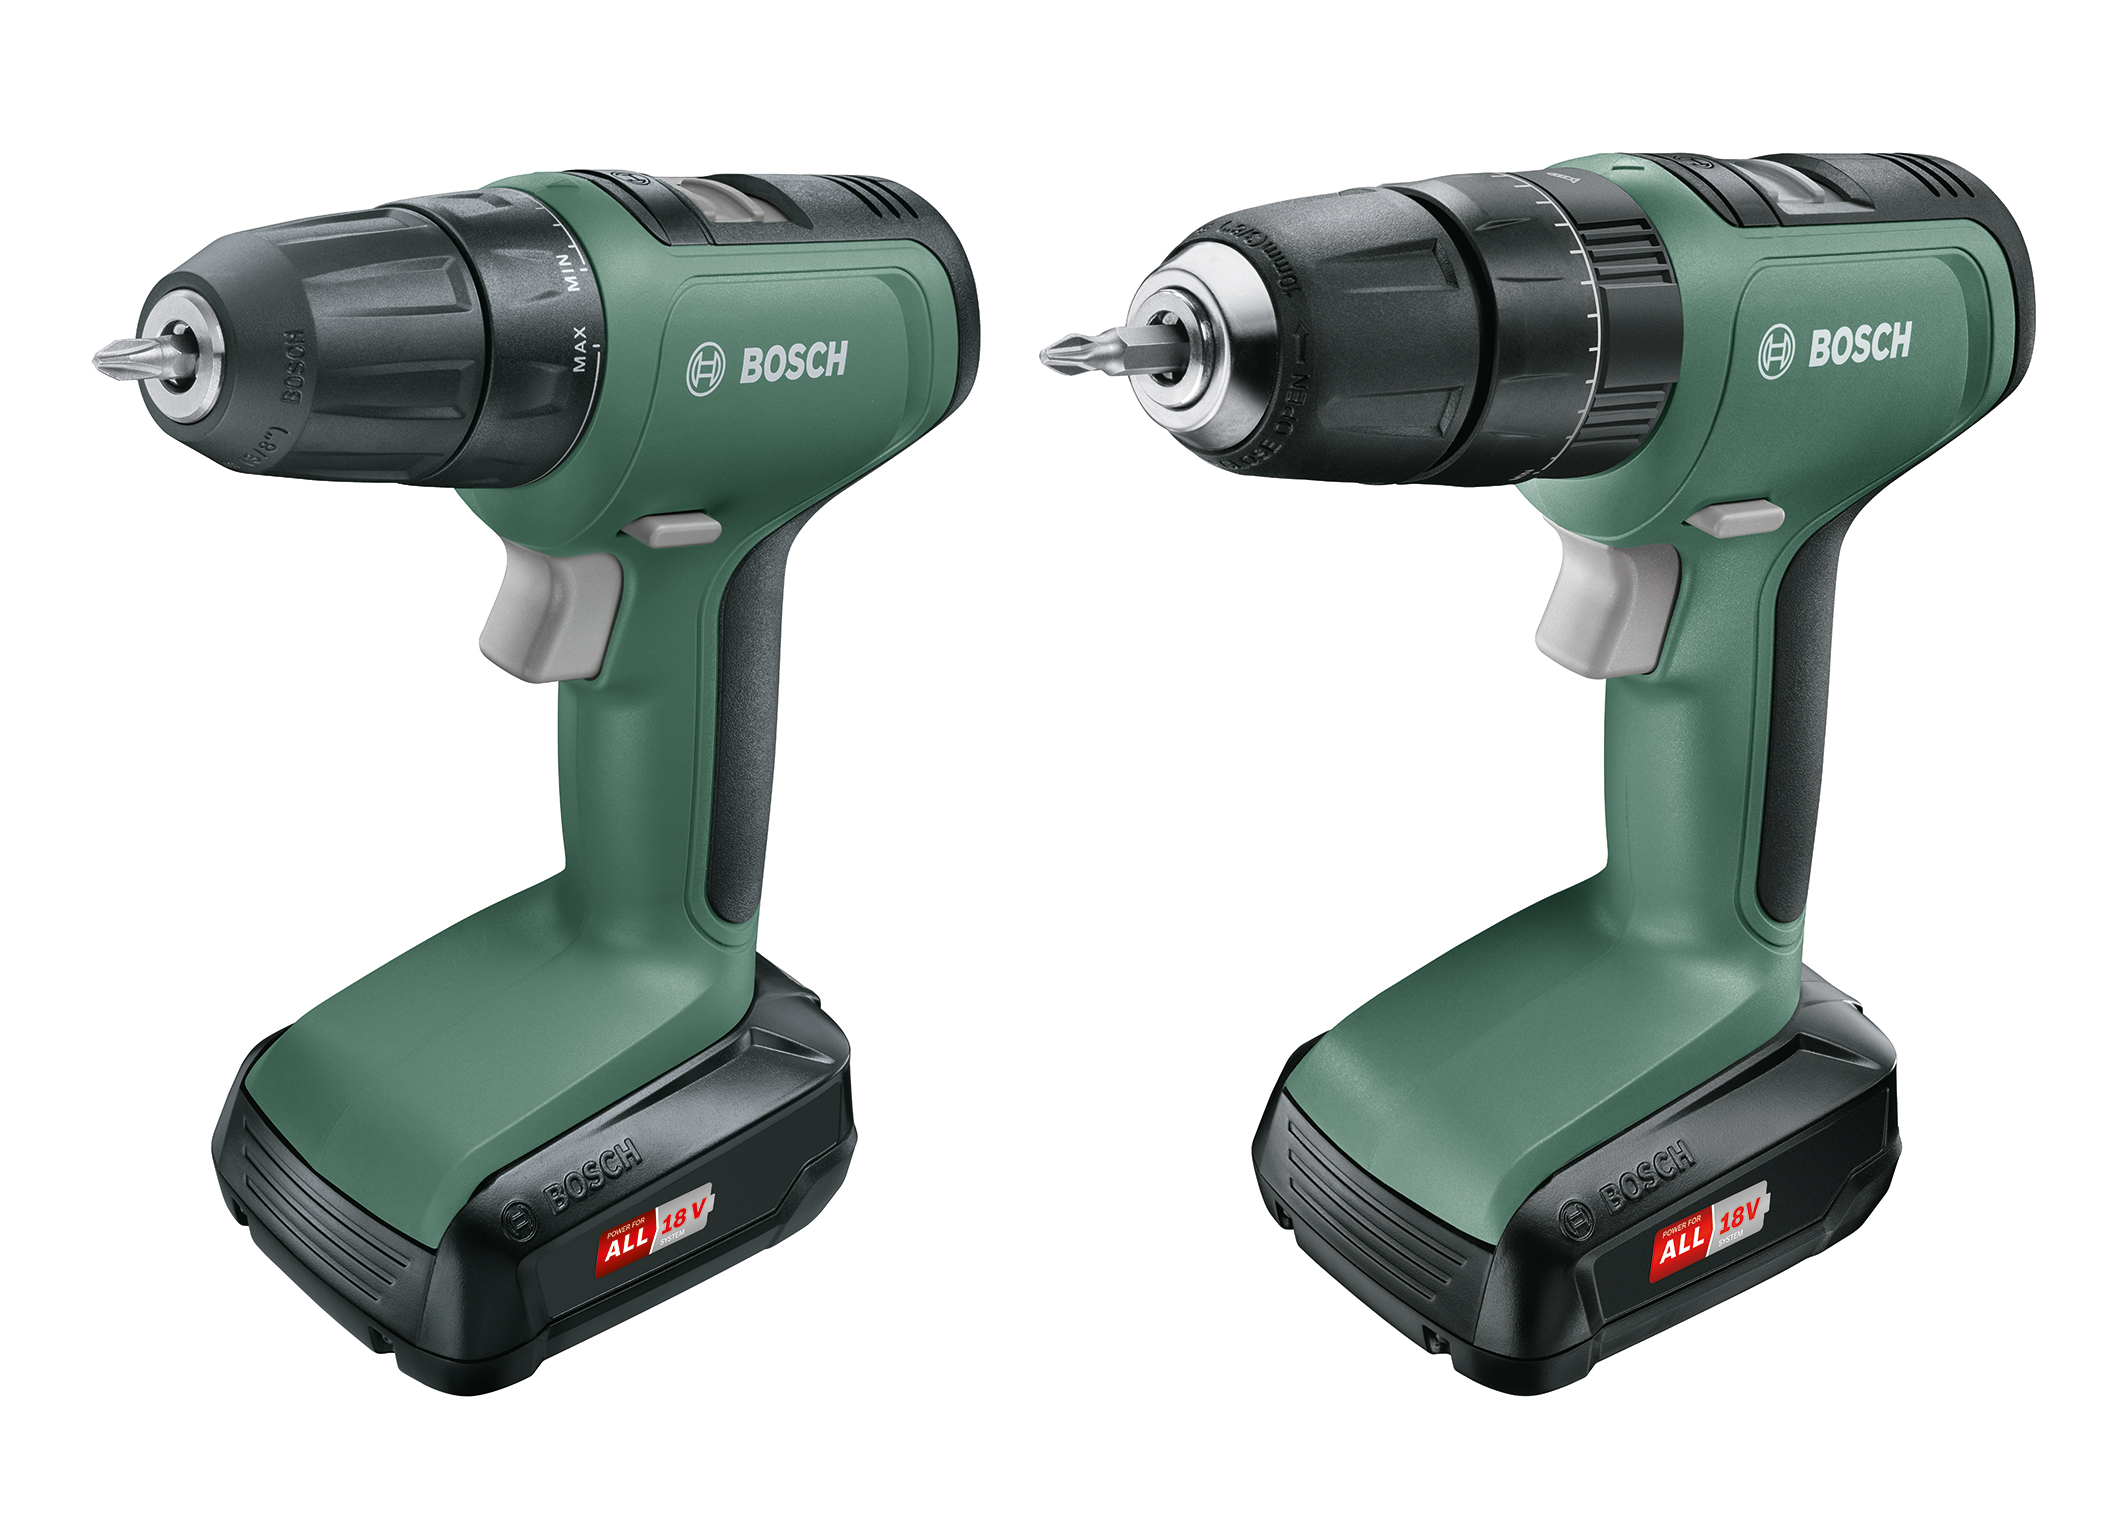 Bosch expands 18 volt system for DIY enthusiasts: UniversalDrill 18 and UniversalImpact 18